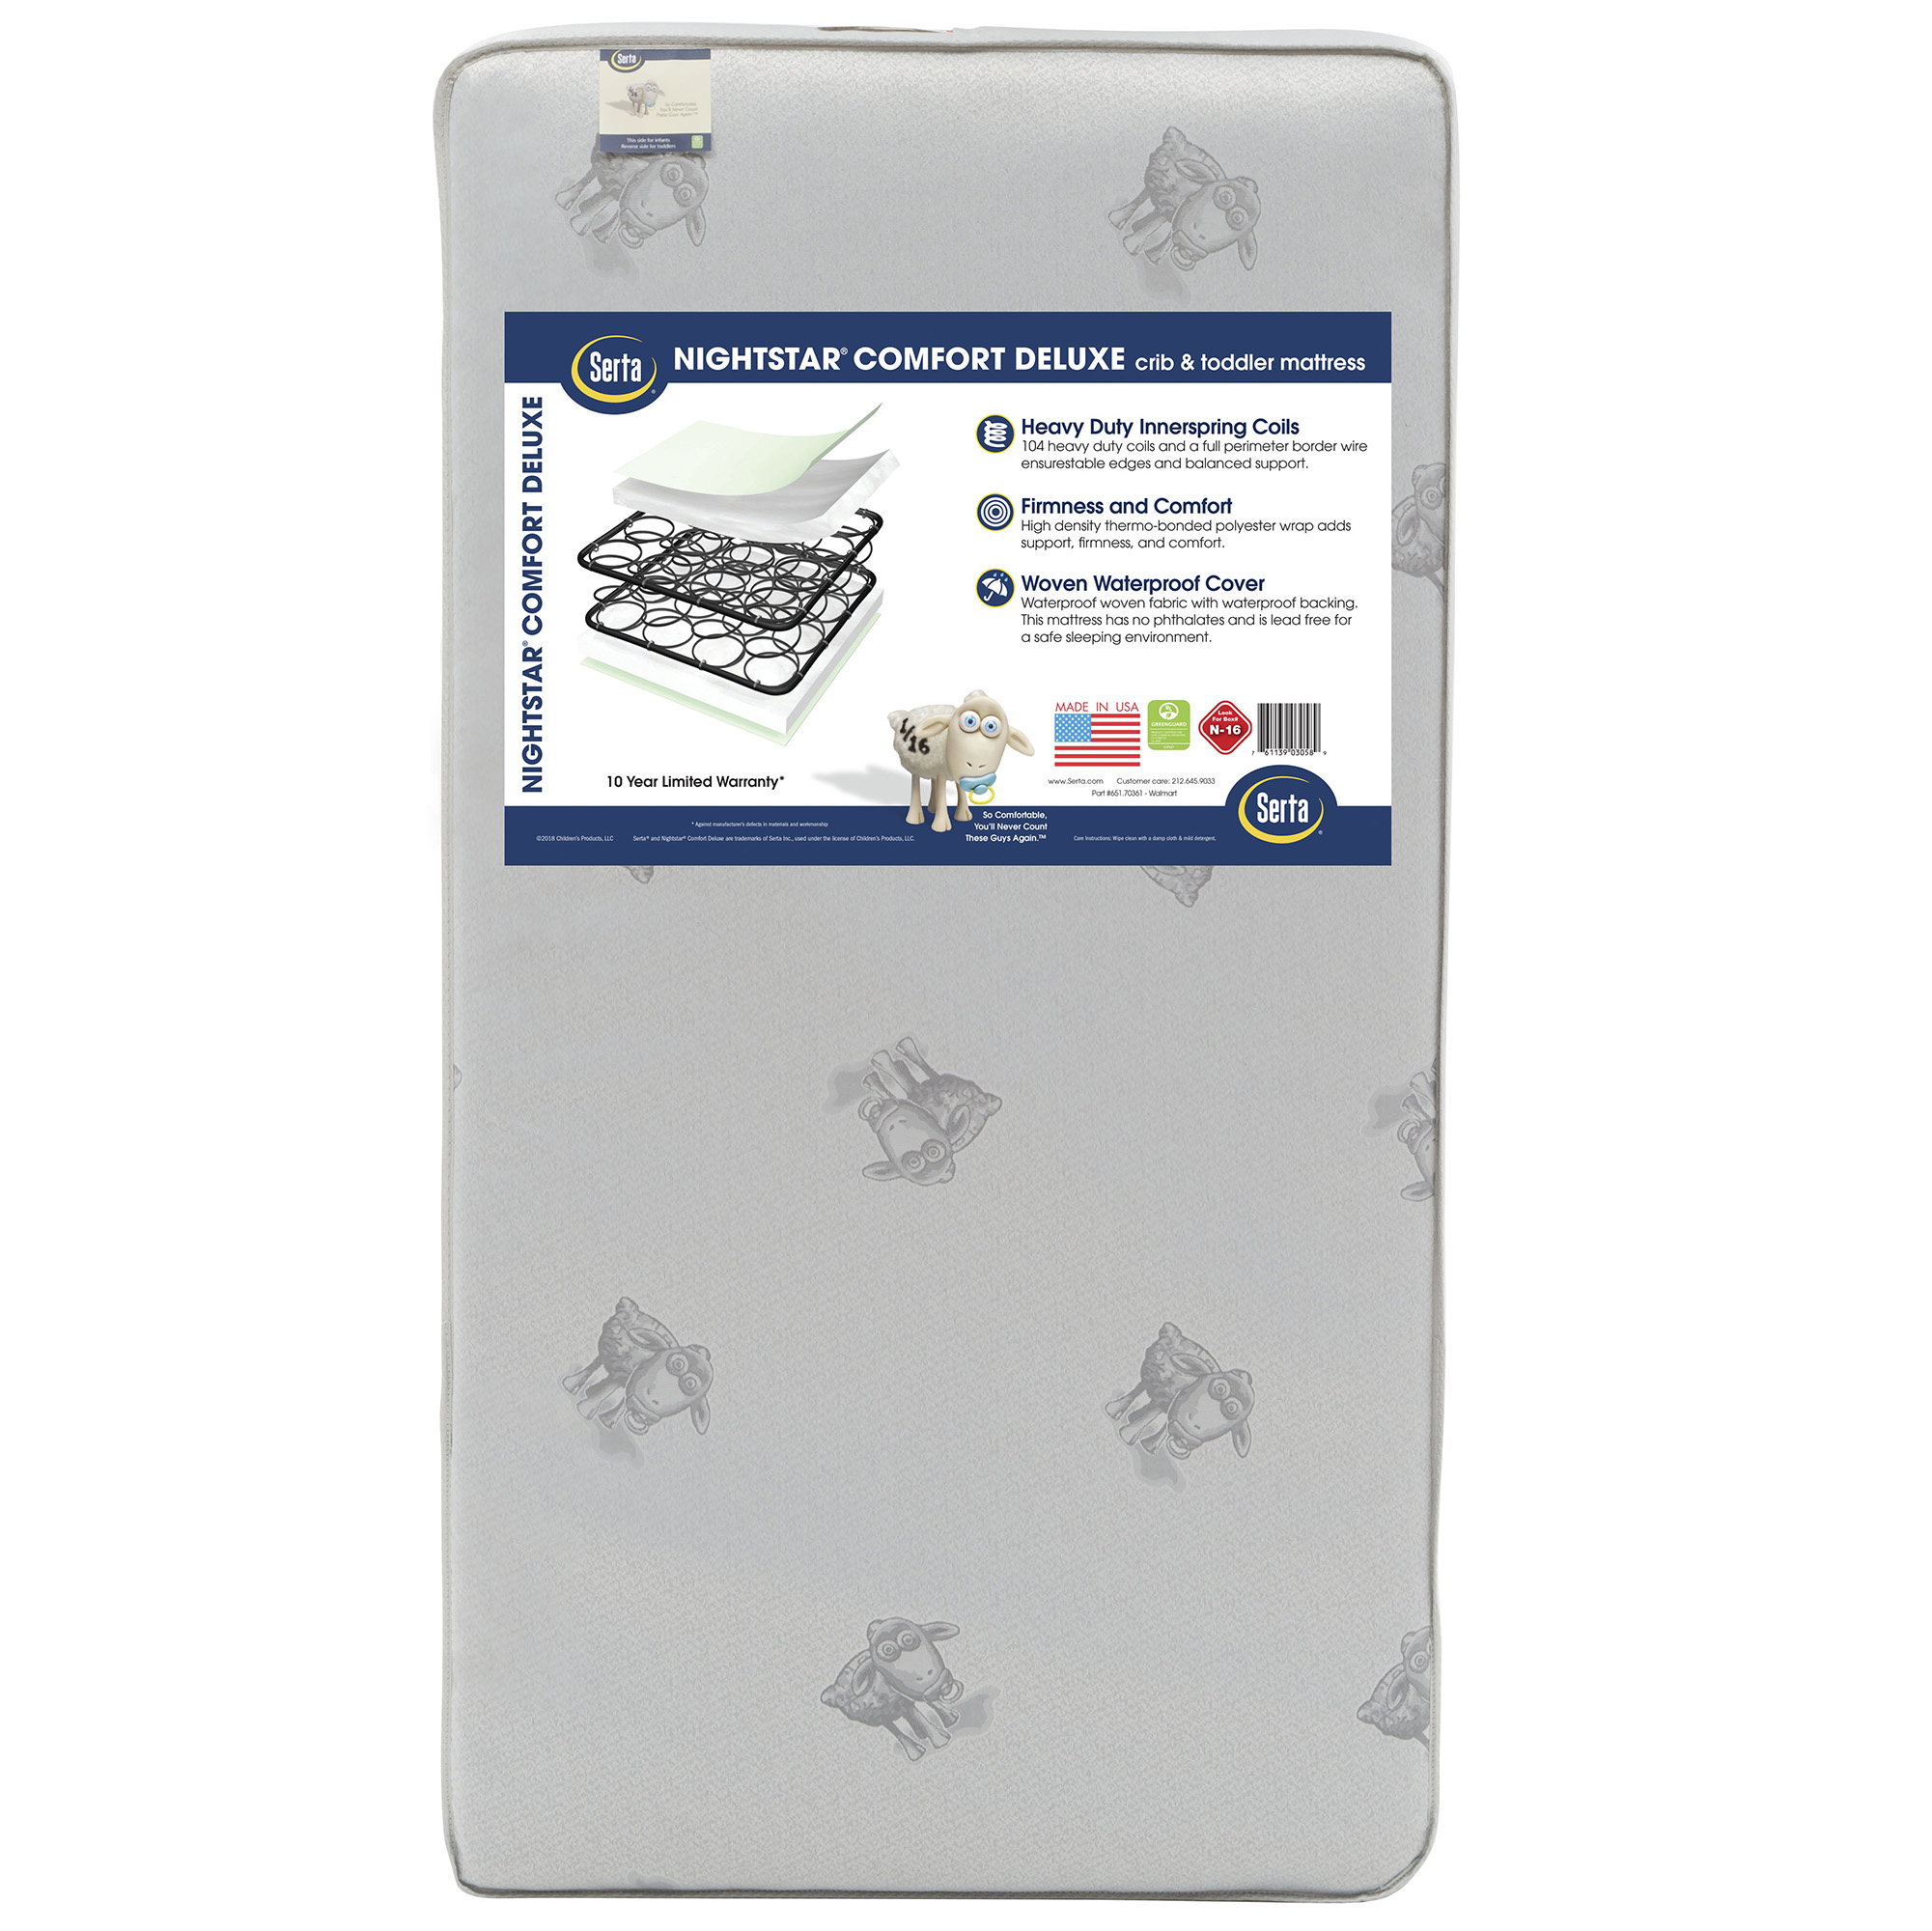 Serta Nightstar Comfort Deluxe 5.25-Inch Crib and Toddler Mattress -104 Coils - Waterproof Woven Cover - GREENGUARD Gold Certified (Natural/Non-Toxic)